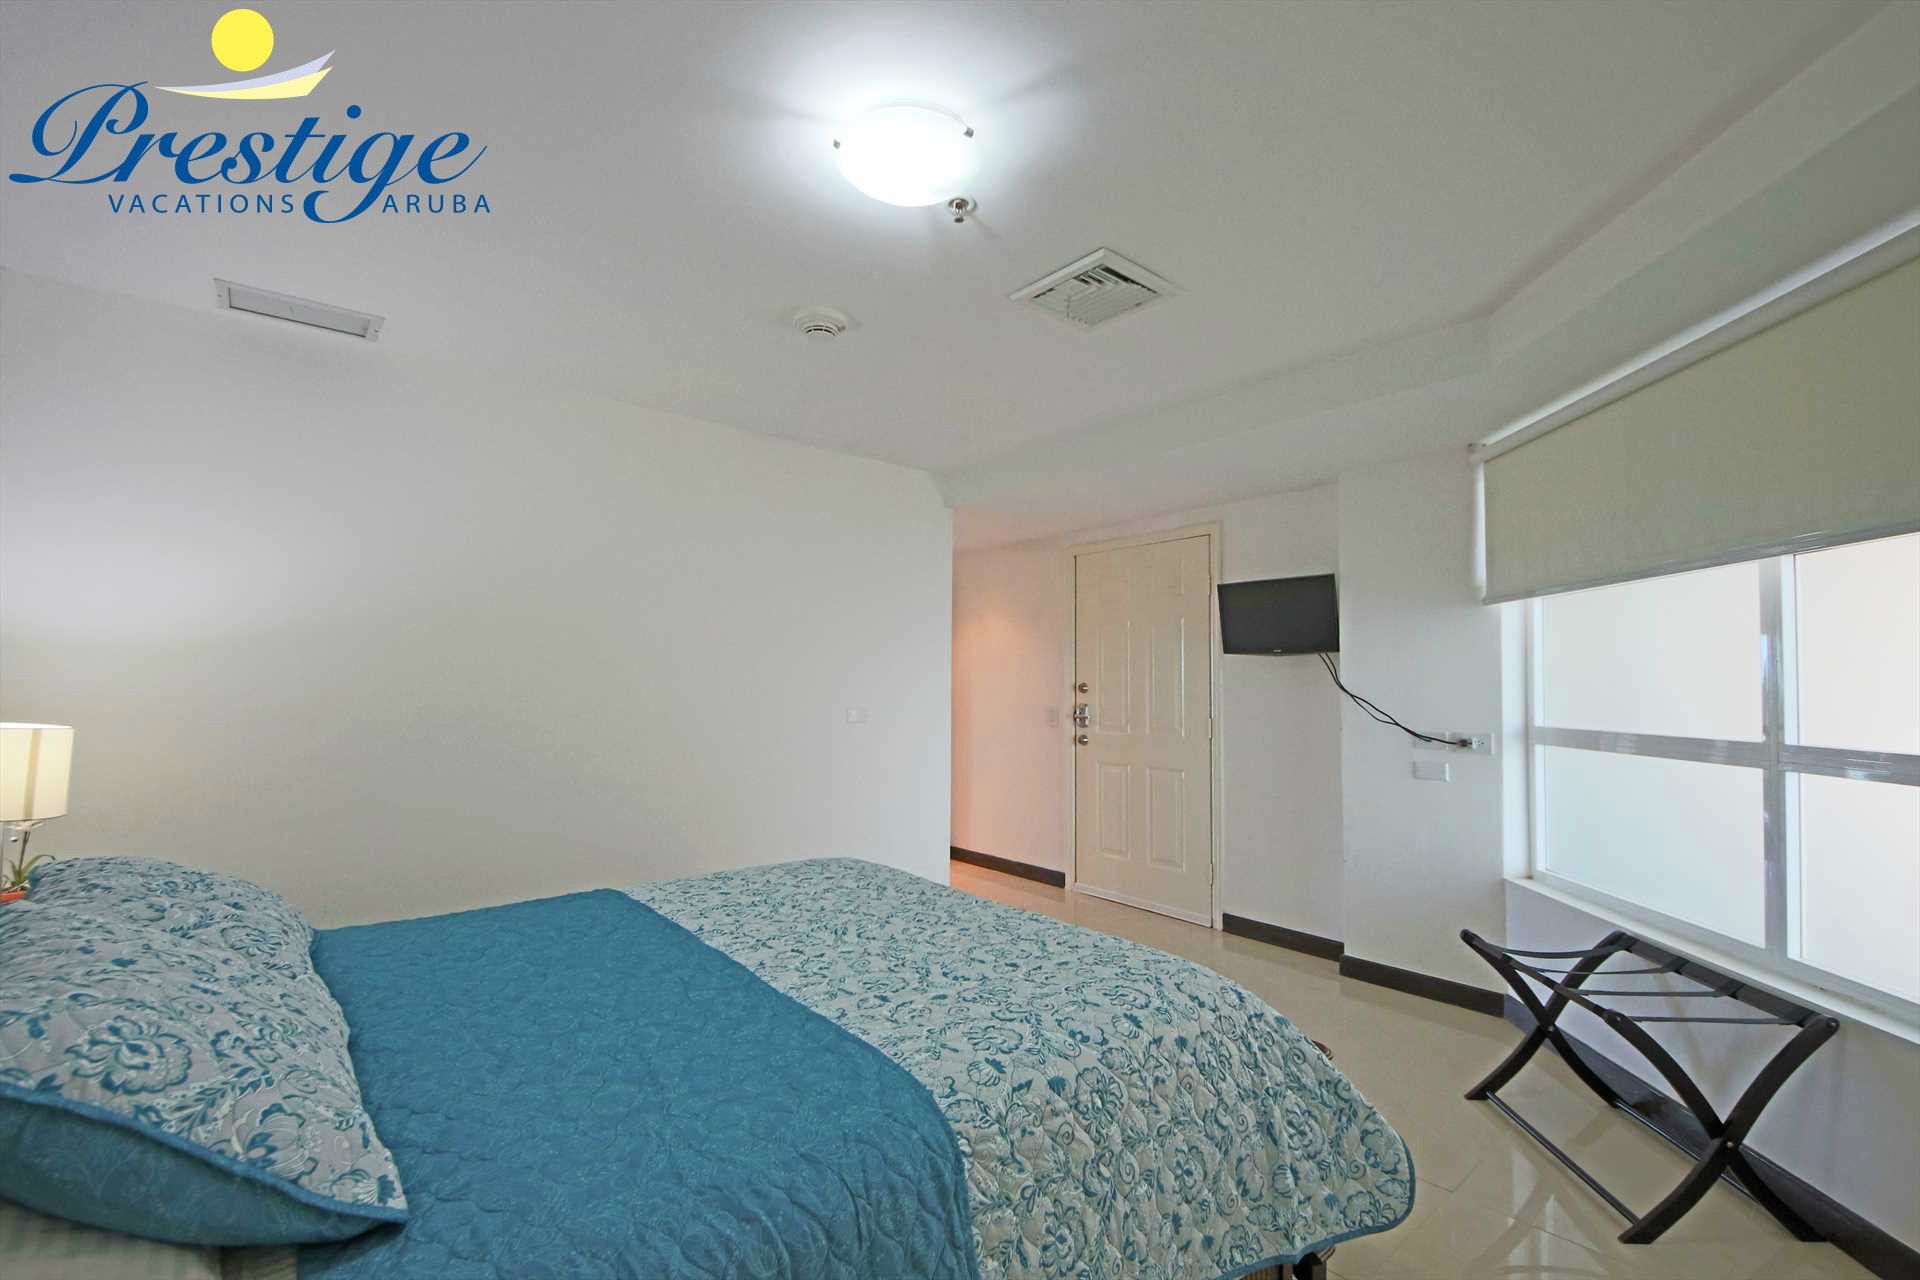 The second bedroom has a TV and an en-suite bathroom with a shower.